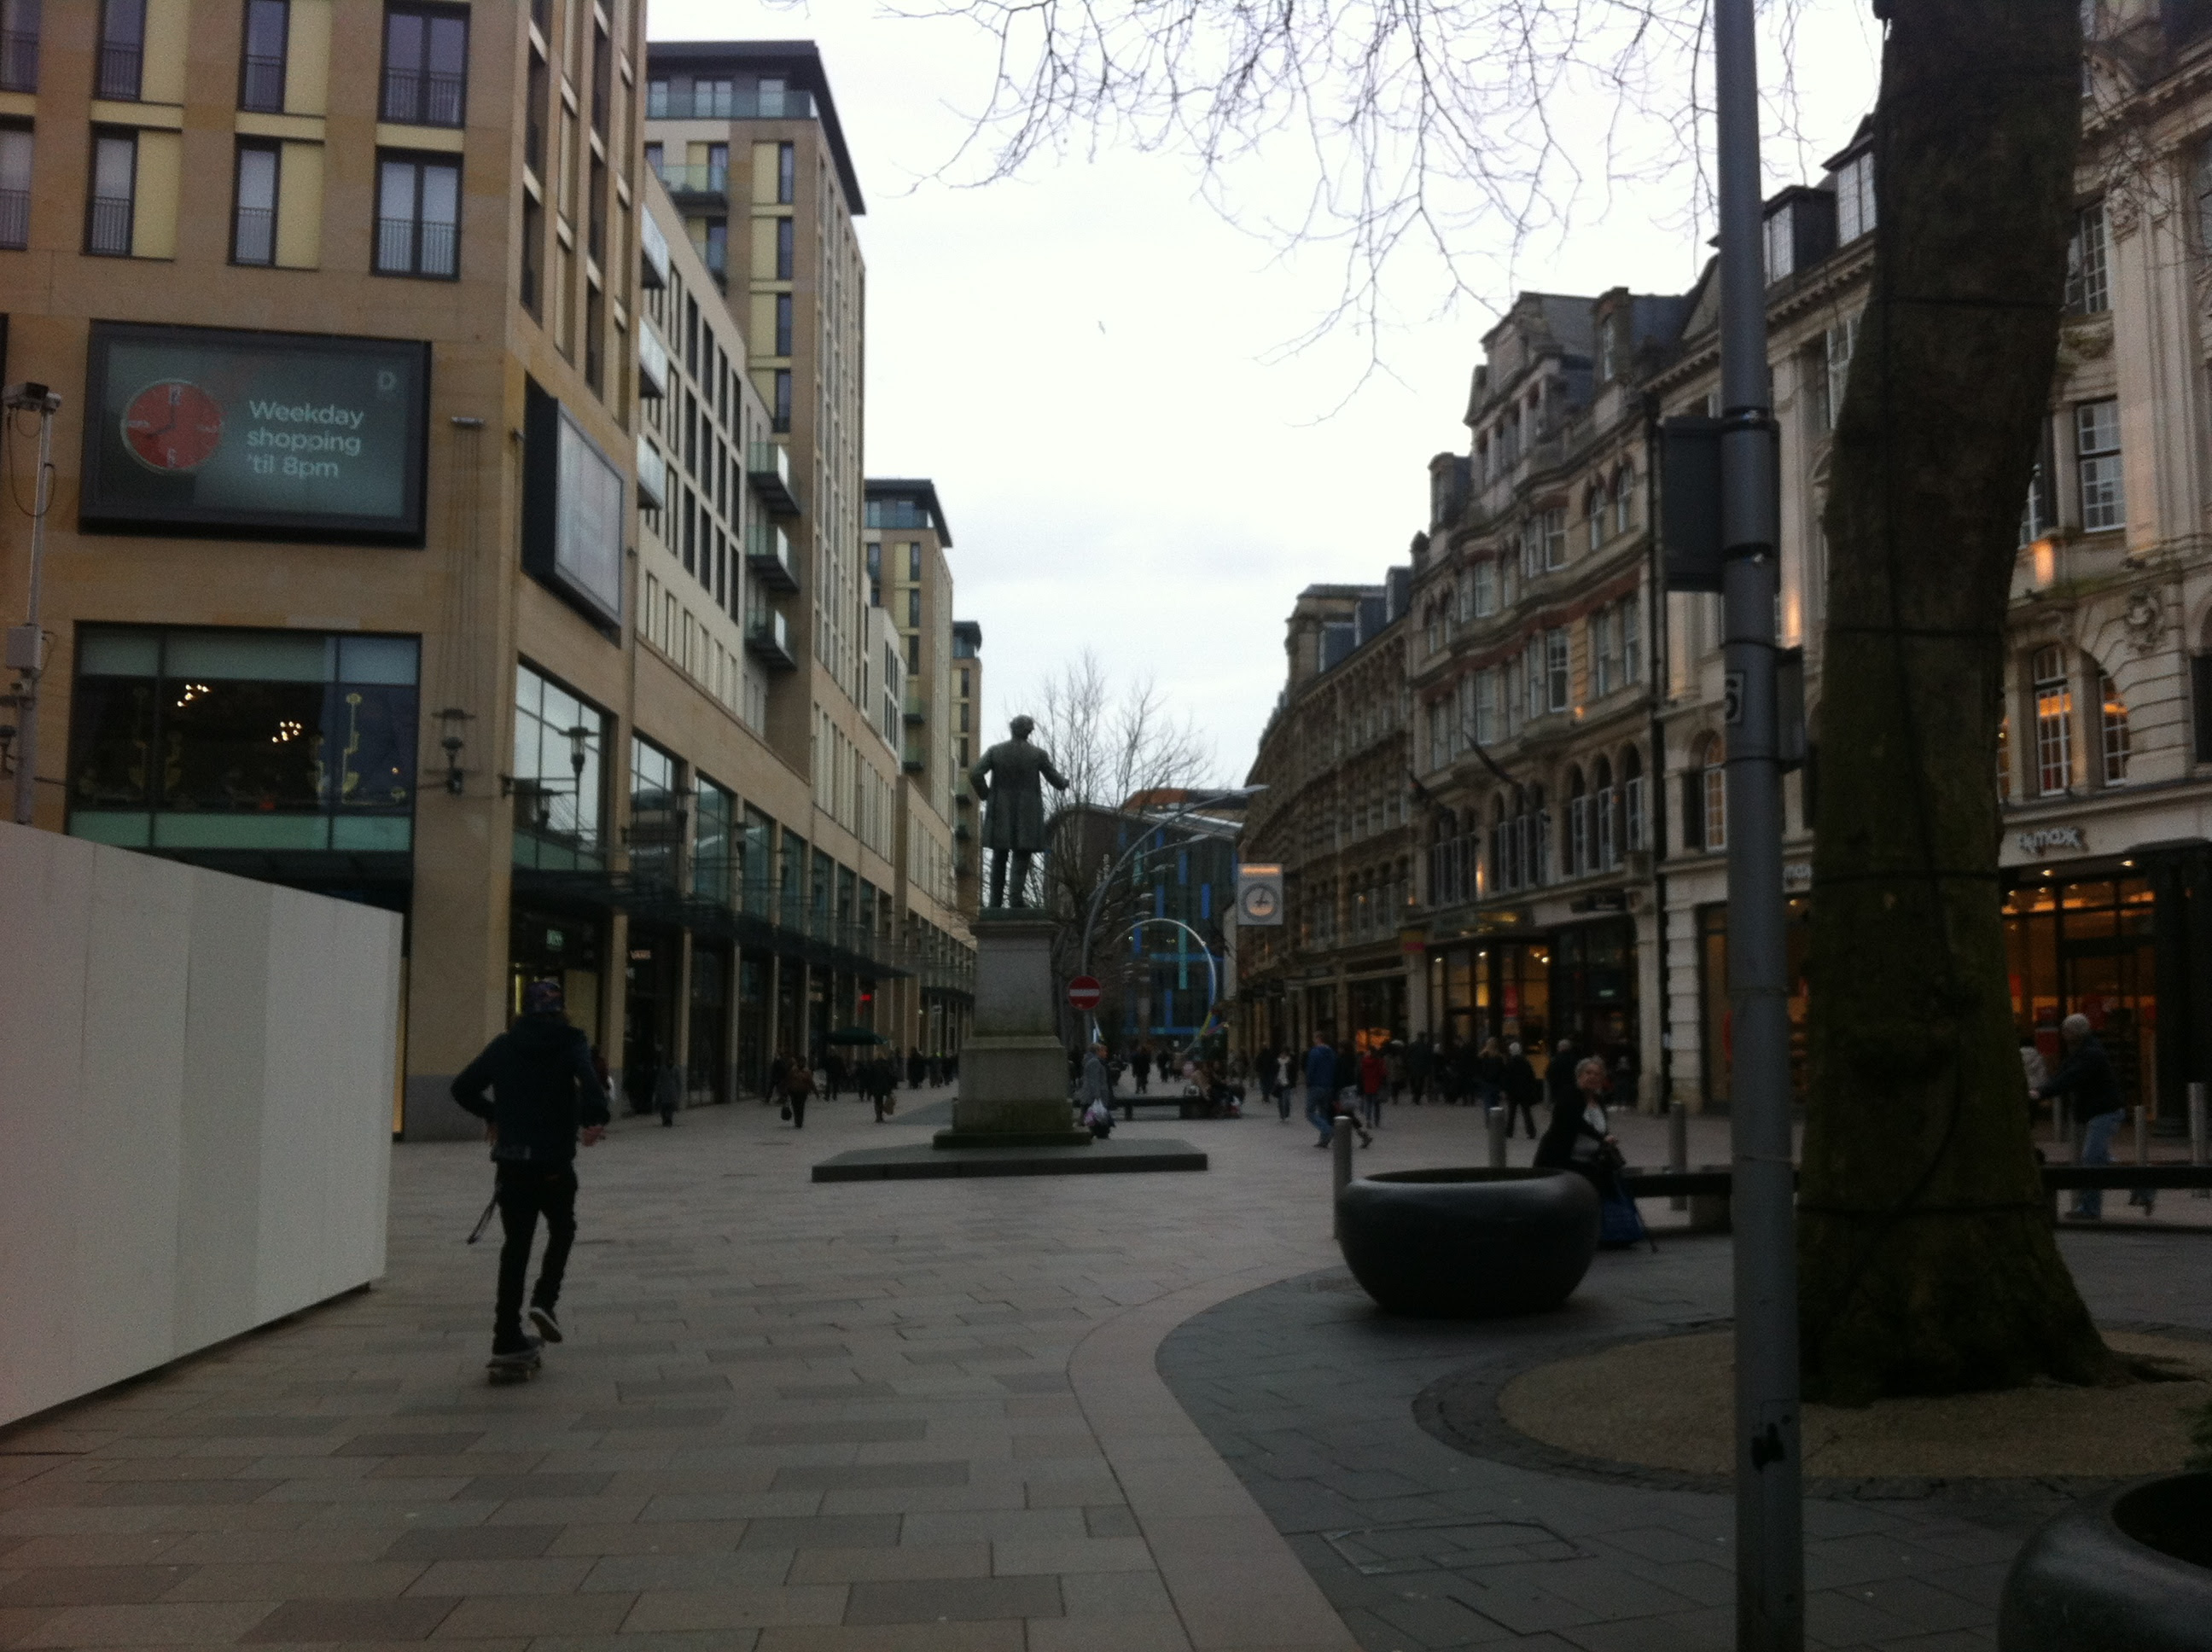 One of my favourite places to shop. Skateboarder is a perfect addition to the pic